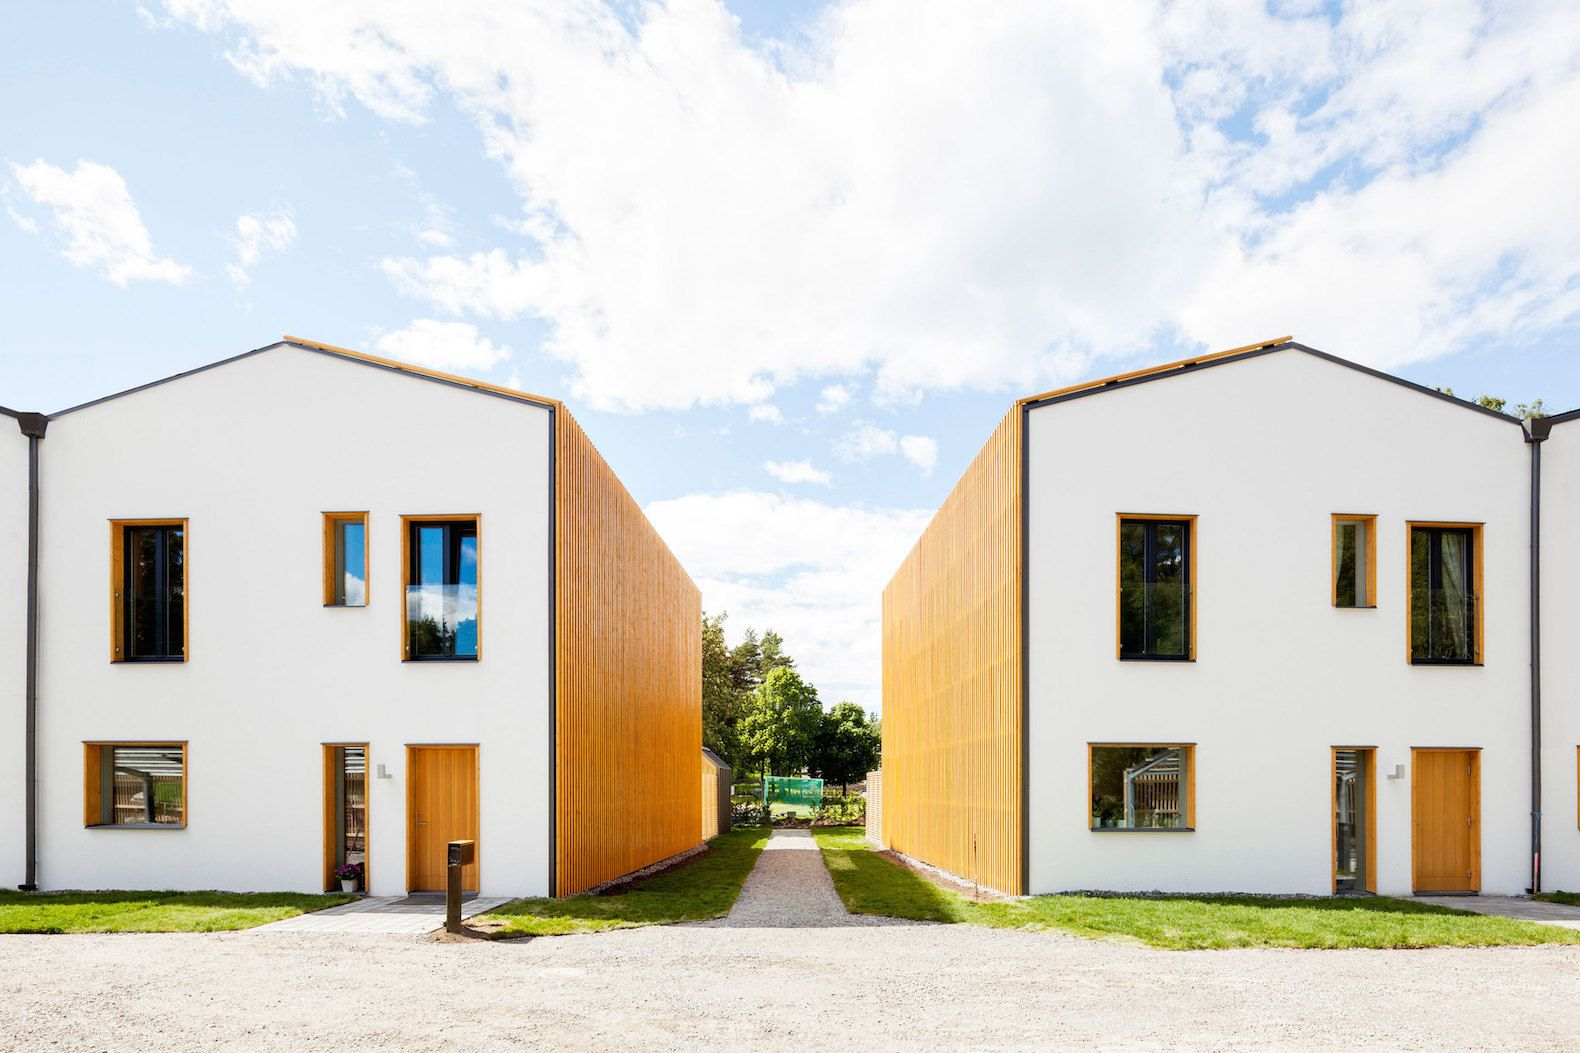 Swedish Homes Solarpowered Swedish Homes Produce At Least As Much Energy As